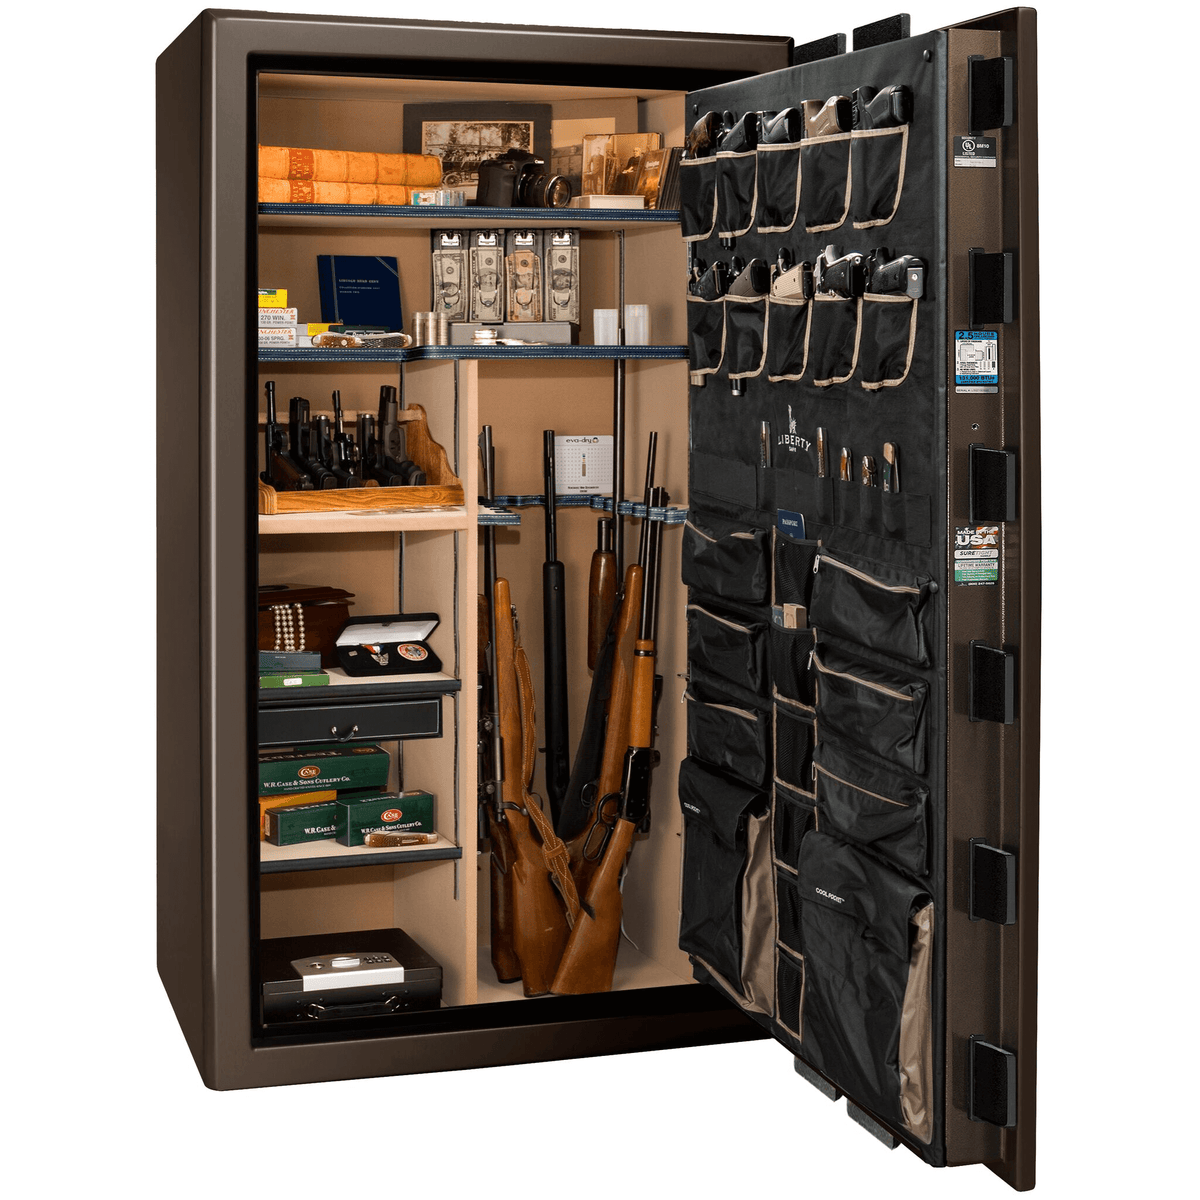 "Presidential | 50 | Level 8 Security | 2.5 Hours Fire Protection | Bronze Gloss | Black Electronic Lock | 72.5""(H) x 42""(W) x 32""(D)"